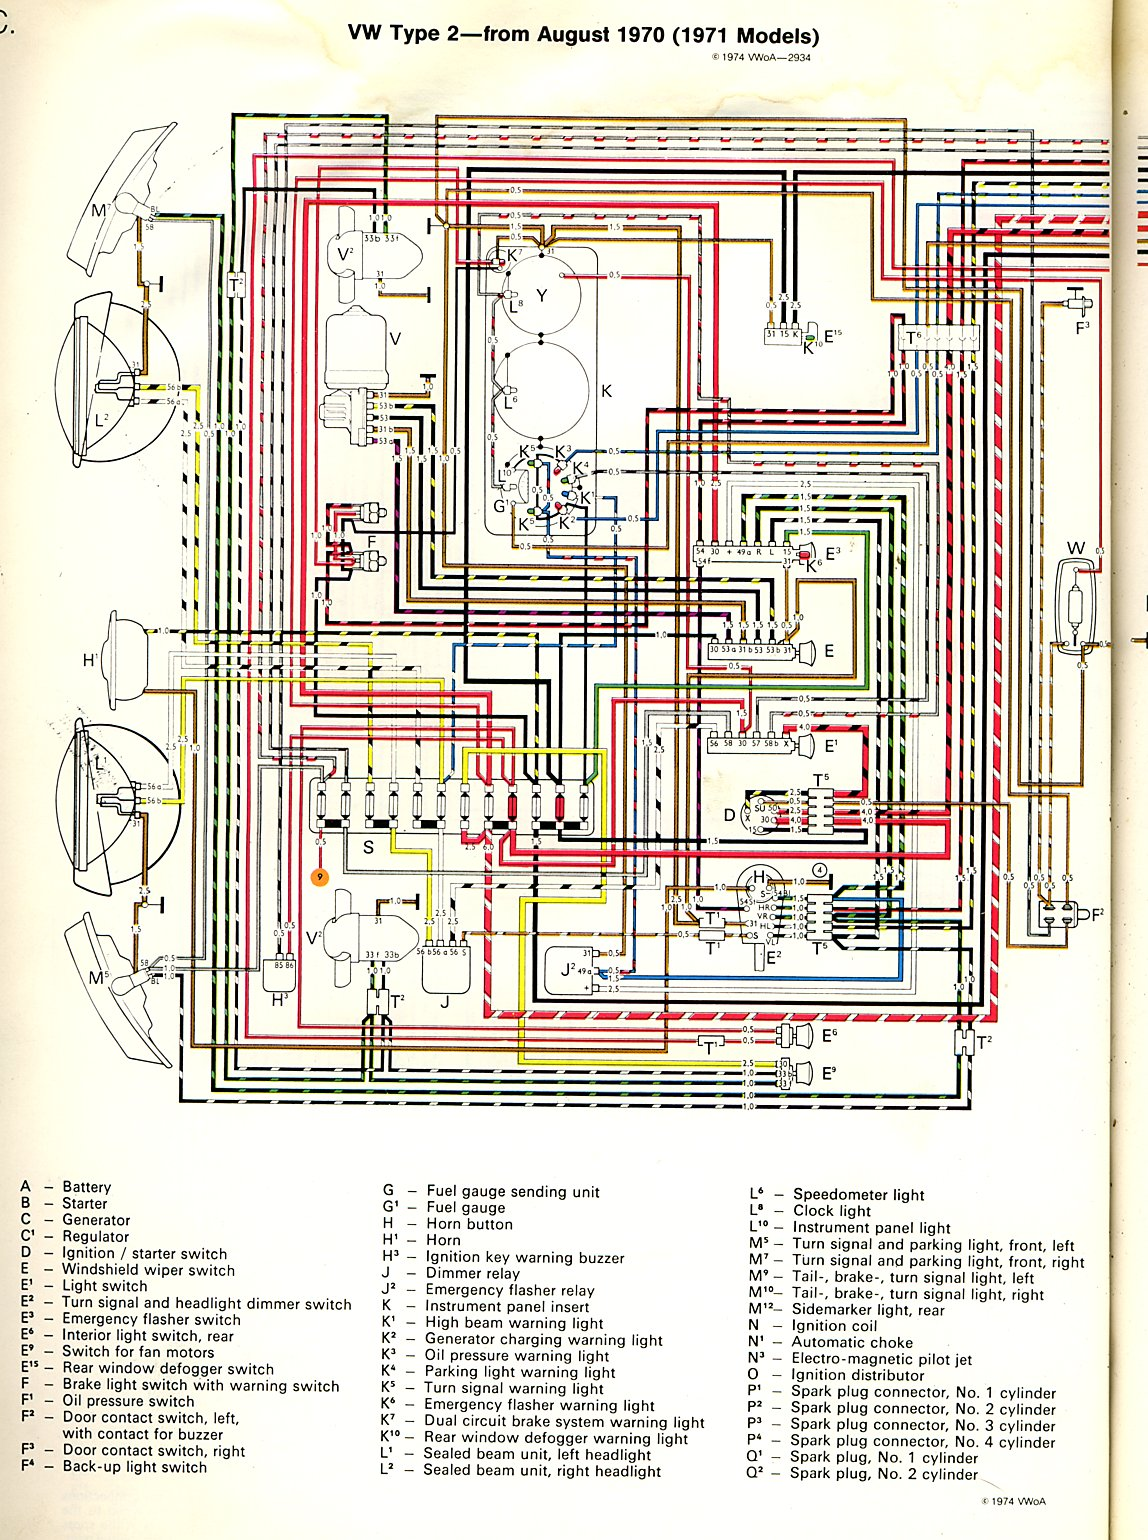 1982 Oldsmobile Toronado Engine Diagram Block And Schematic Diagrams 1969 Wiring Thesamba Com Type 2 1970 1972